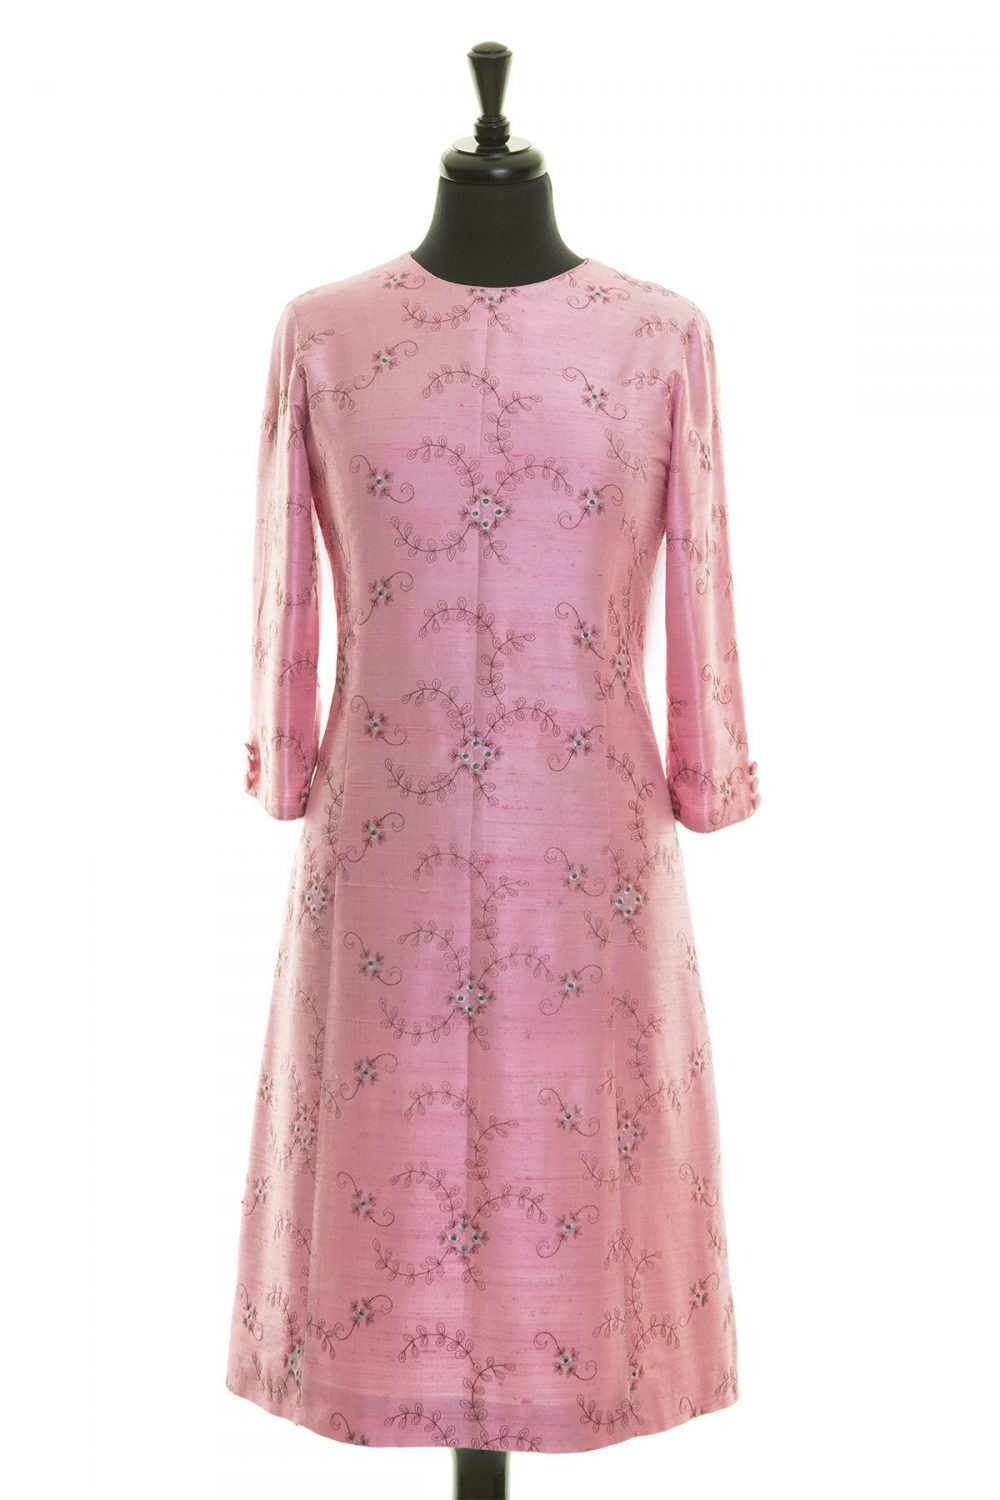 Women's Light Pink Embroidered Silk A-Line Dress, 3/4 Length Sleeves, Mother Of The Bride Opera Outfit, Ladies Day, Races, Party